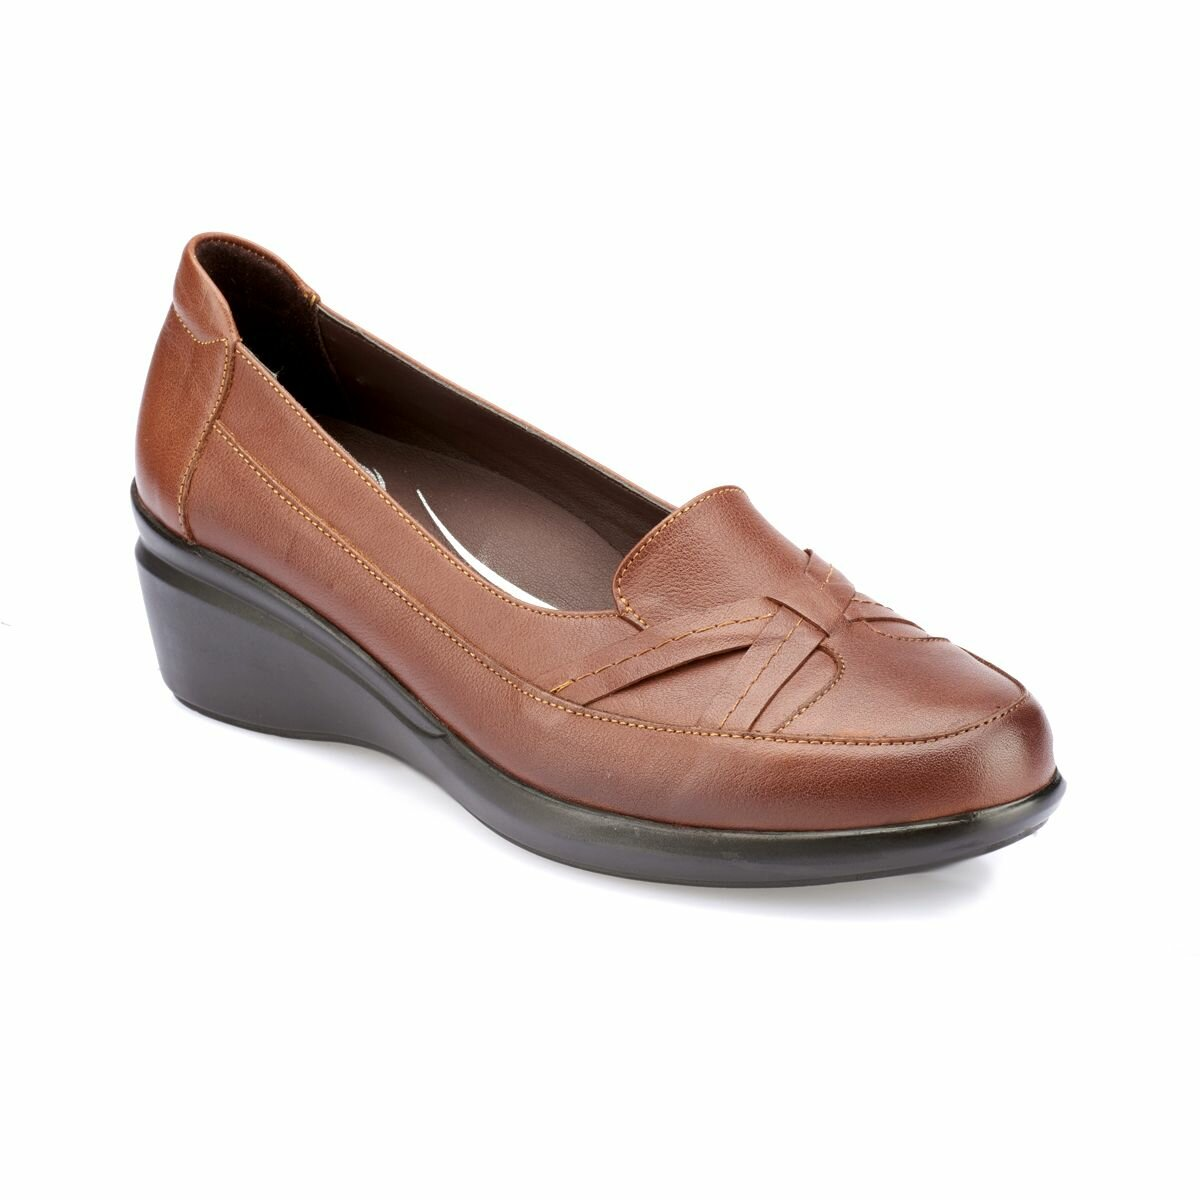 FLO 82. 100135.Z Tan Women 'S Shoes Polaris 5 Point